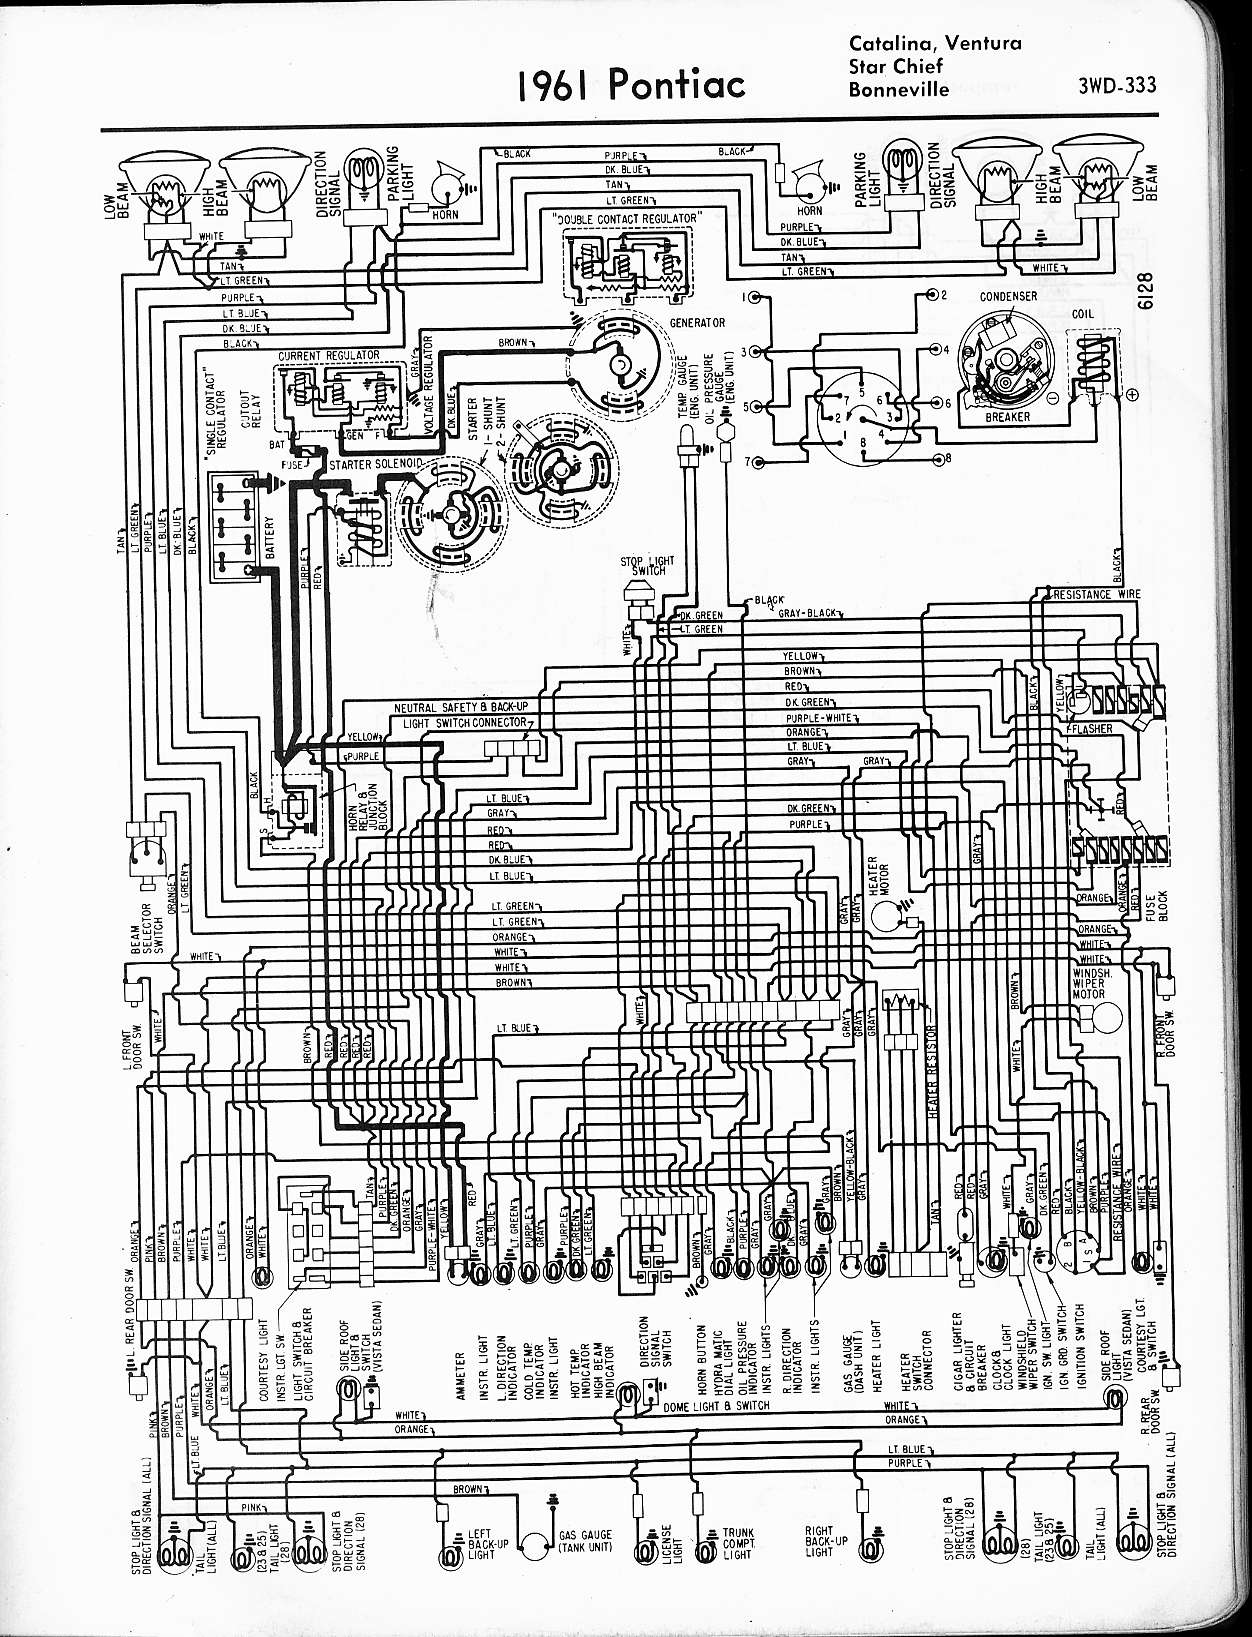 1995 Pontiac Bonneville Wiring Harness Library Additionally Ford Fiesta Diagram On Vacuum Pump Wallace Racing Diagrams